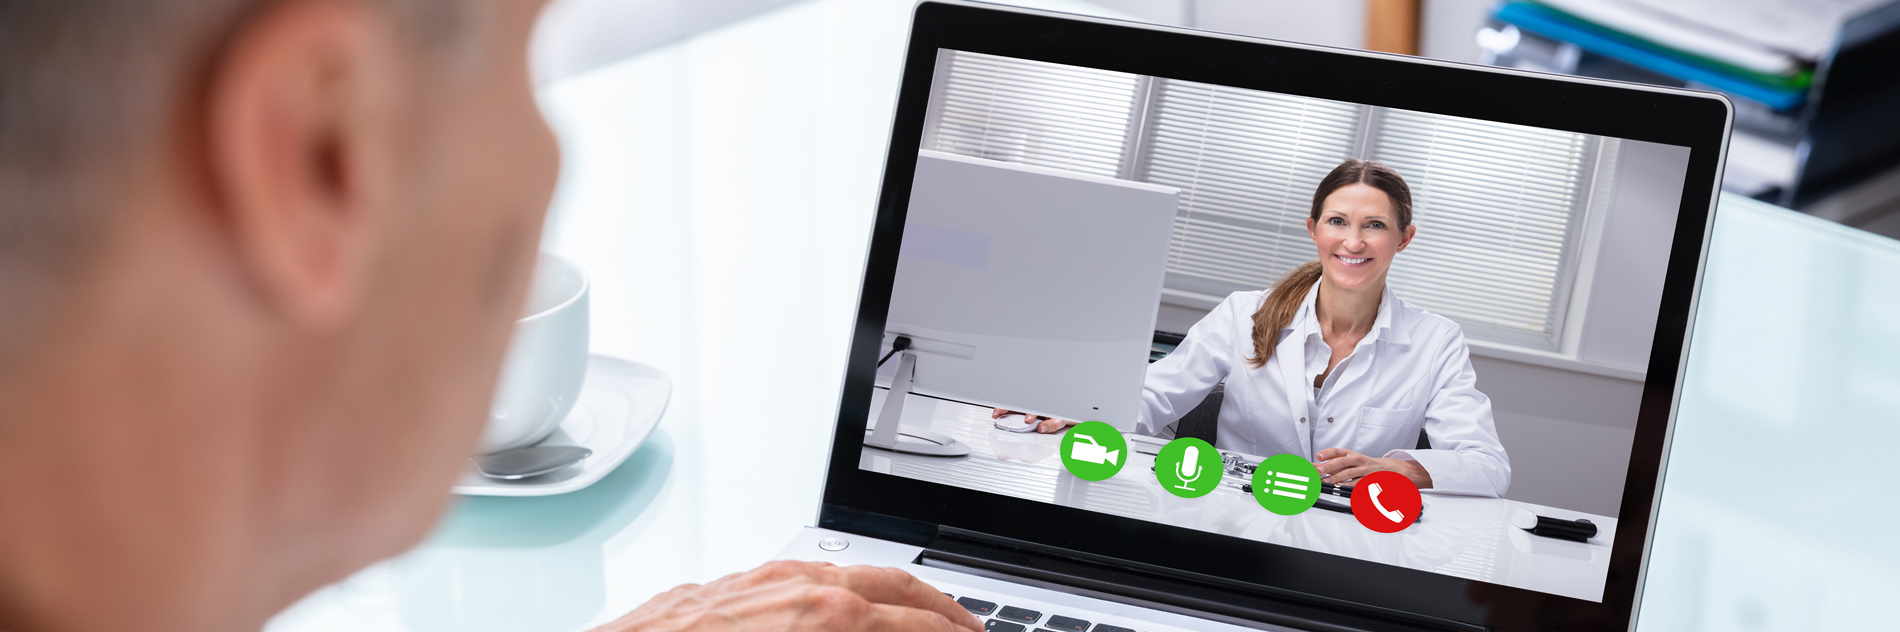 Online telemedicine appointments